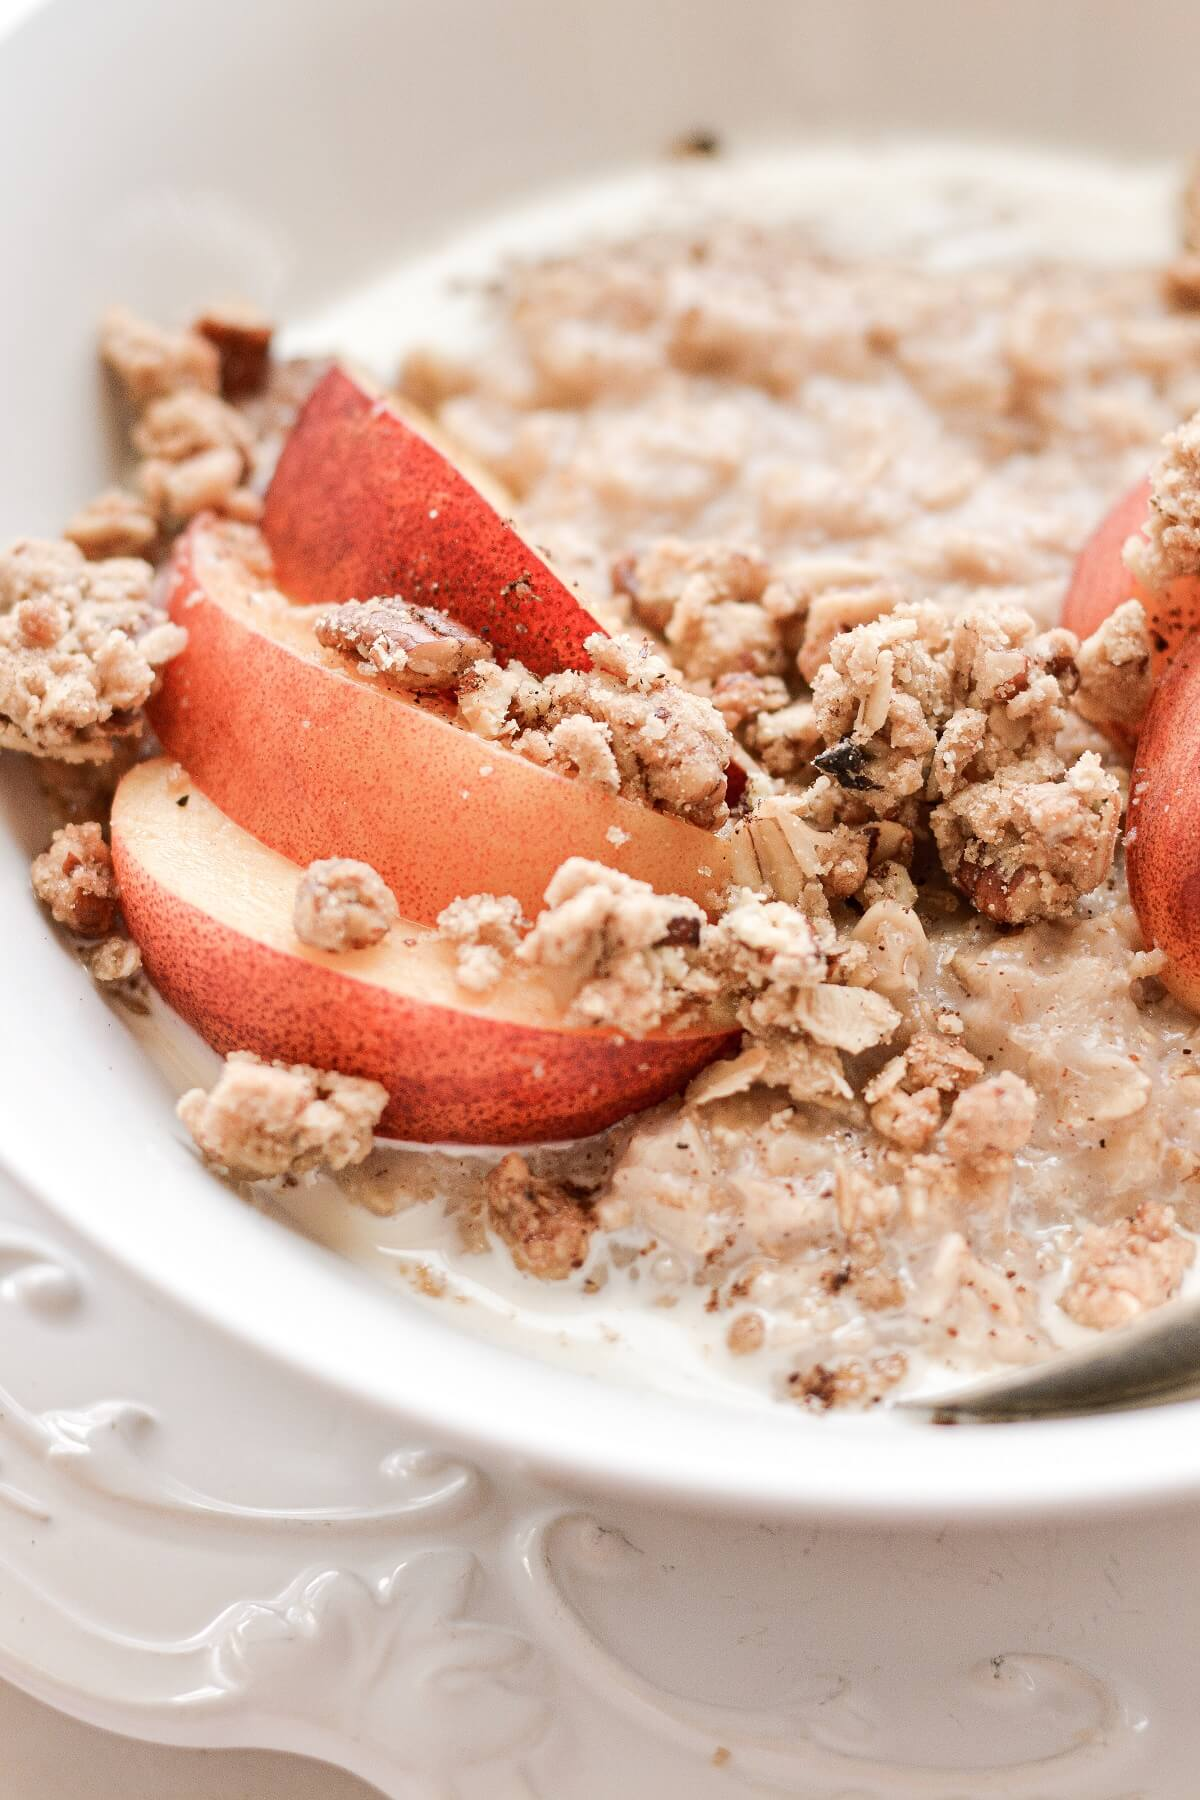 A bowl of oatmeal topped with sliced peaches and crumble topping.